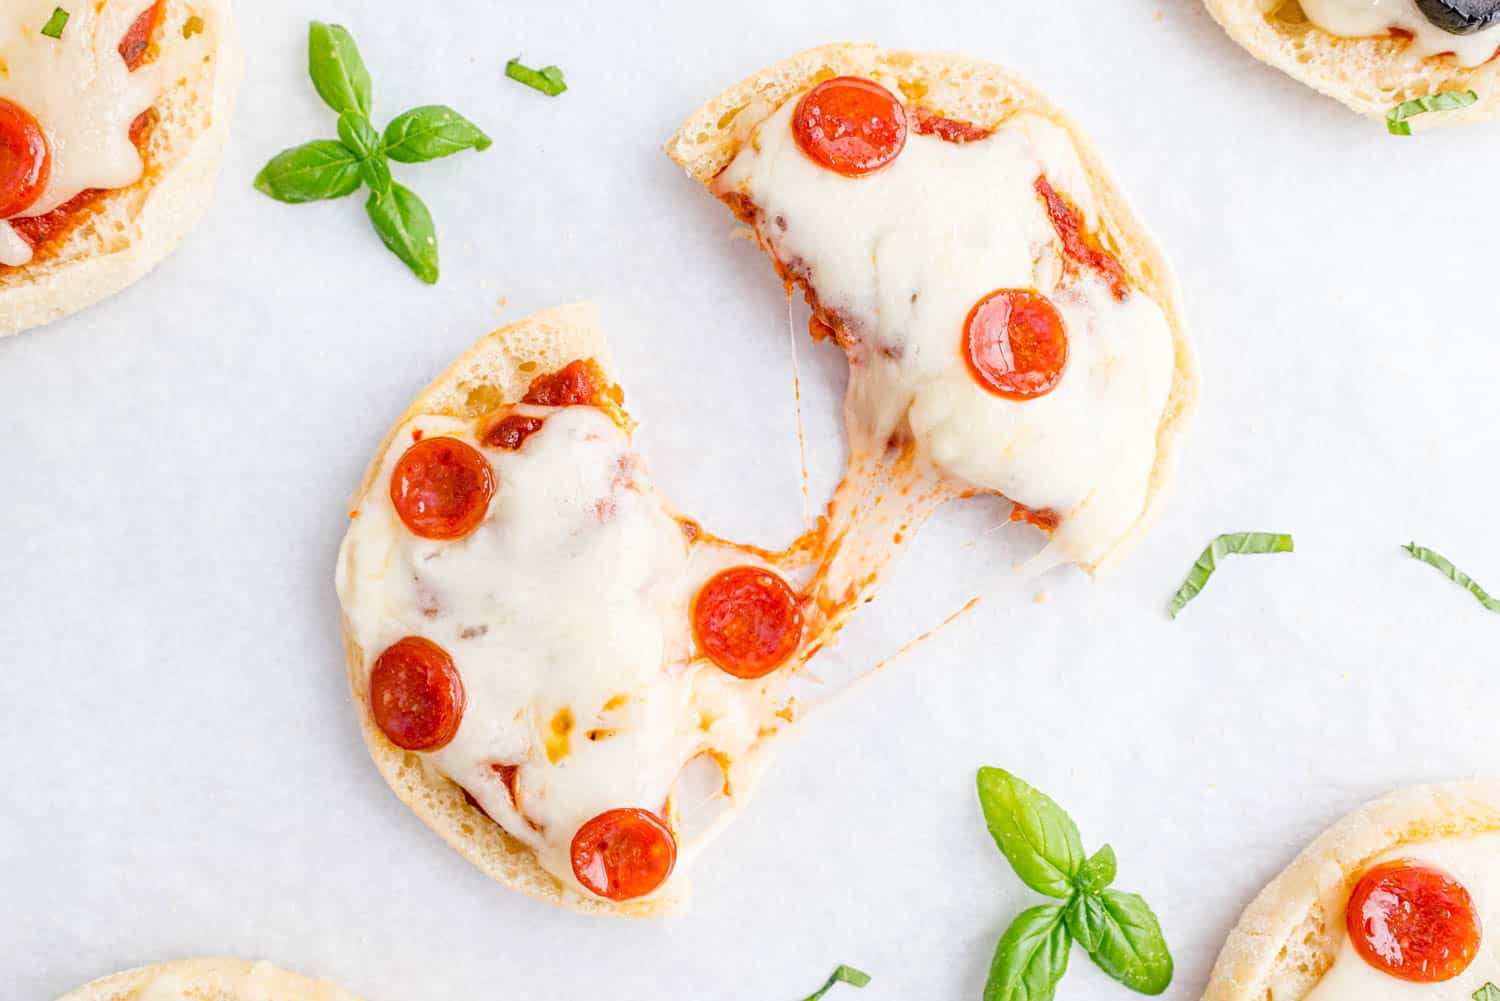 Pepperoni topped english muffin pizza, split in half with a cheese connecting two halves.